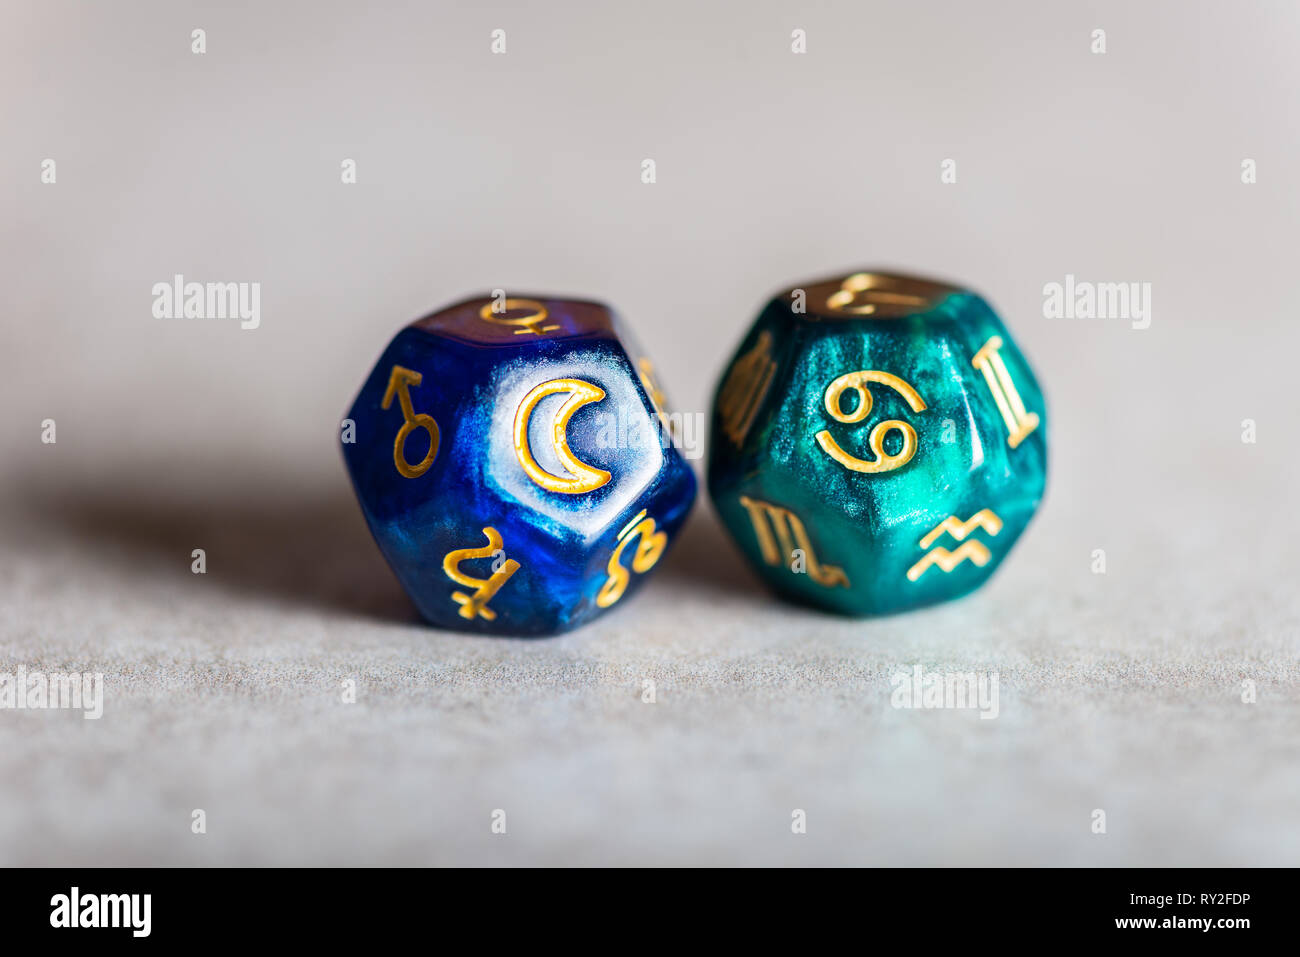 Astrology Dice with zodiac symbol of Cancer and its ruling celestial body the Moon Stock Photo